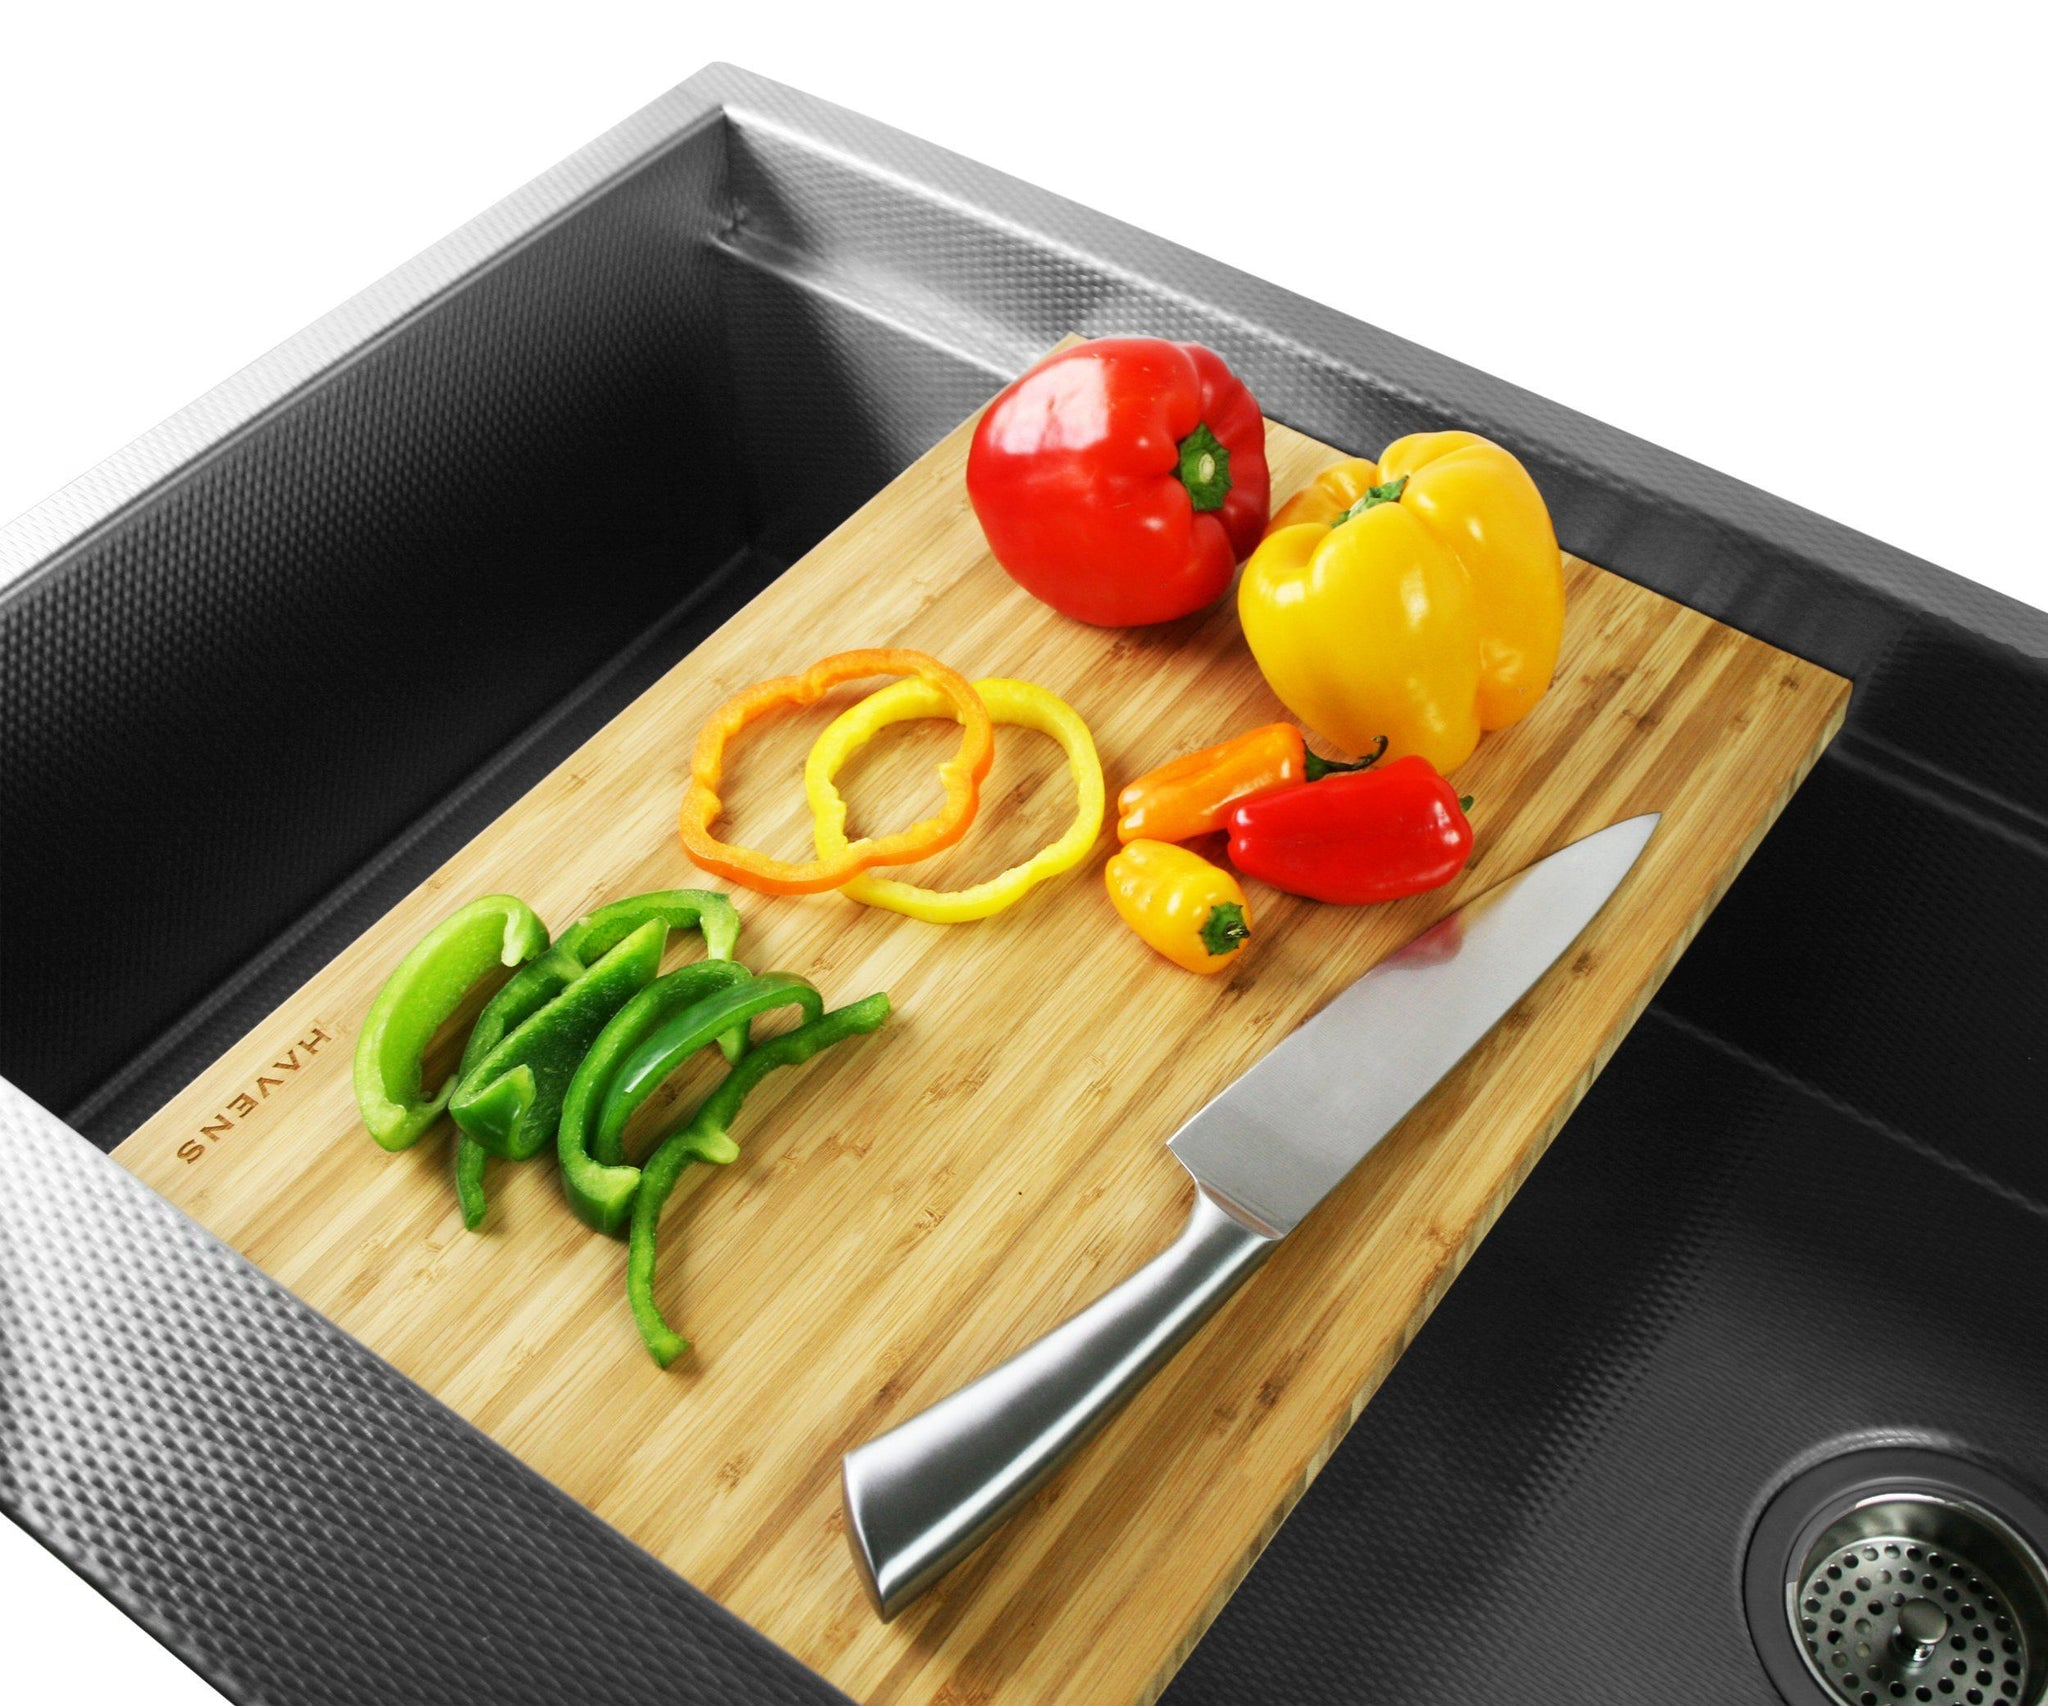 Culinary workstation sink cutting board by Havens